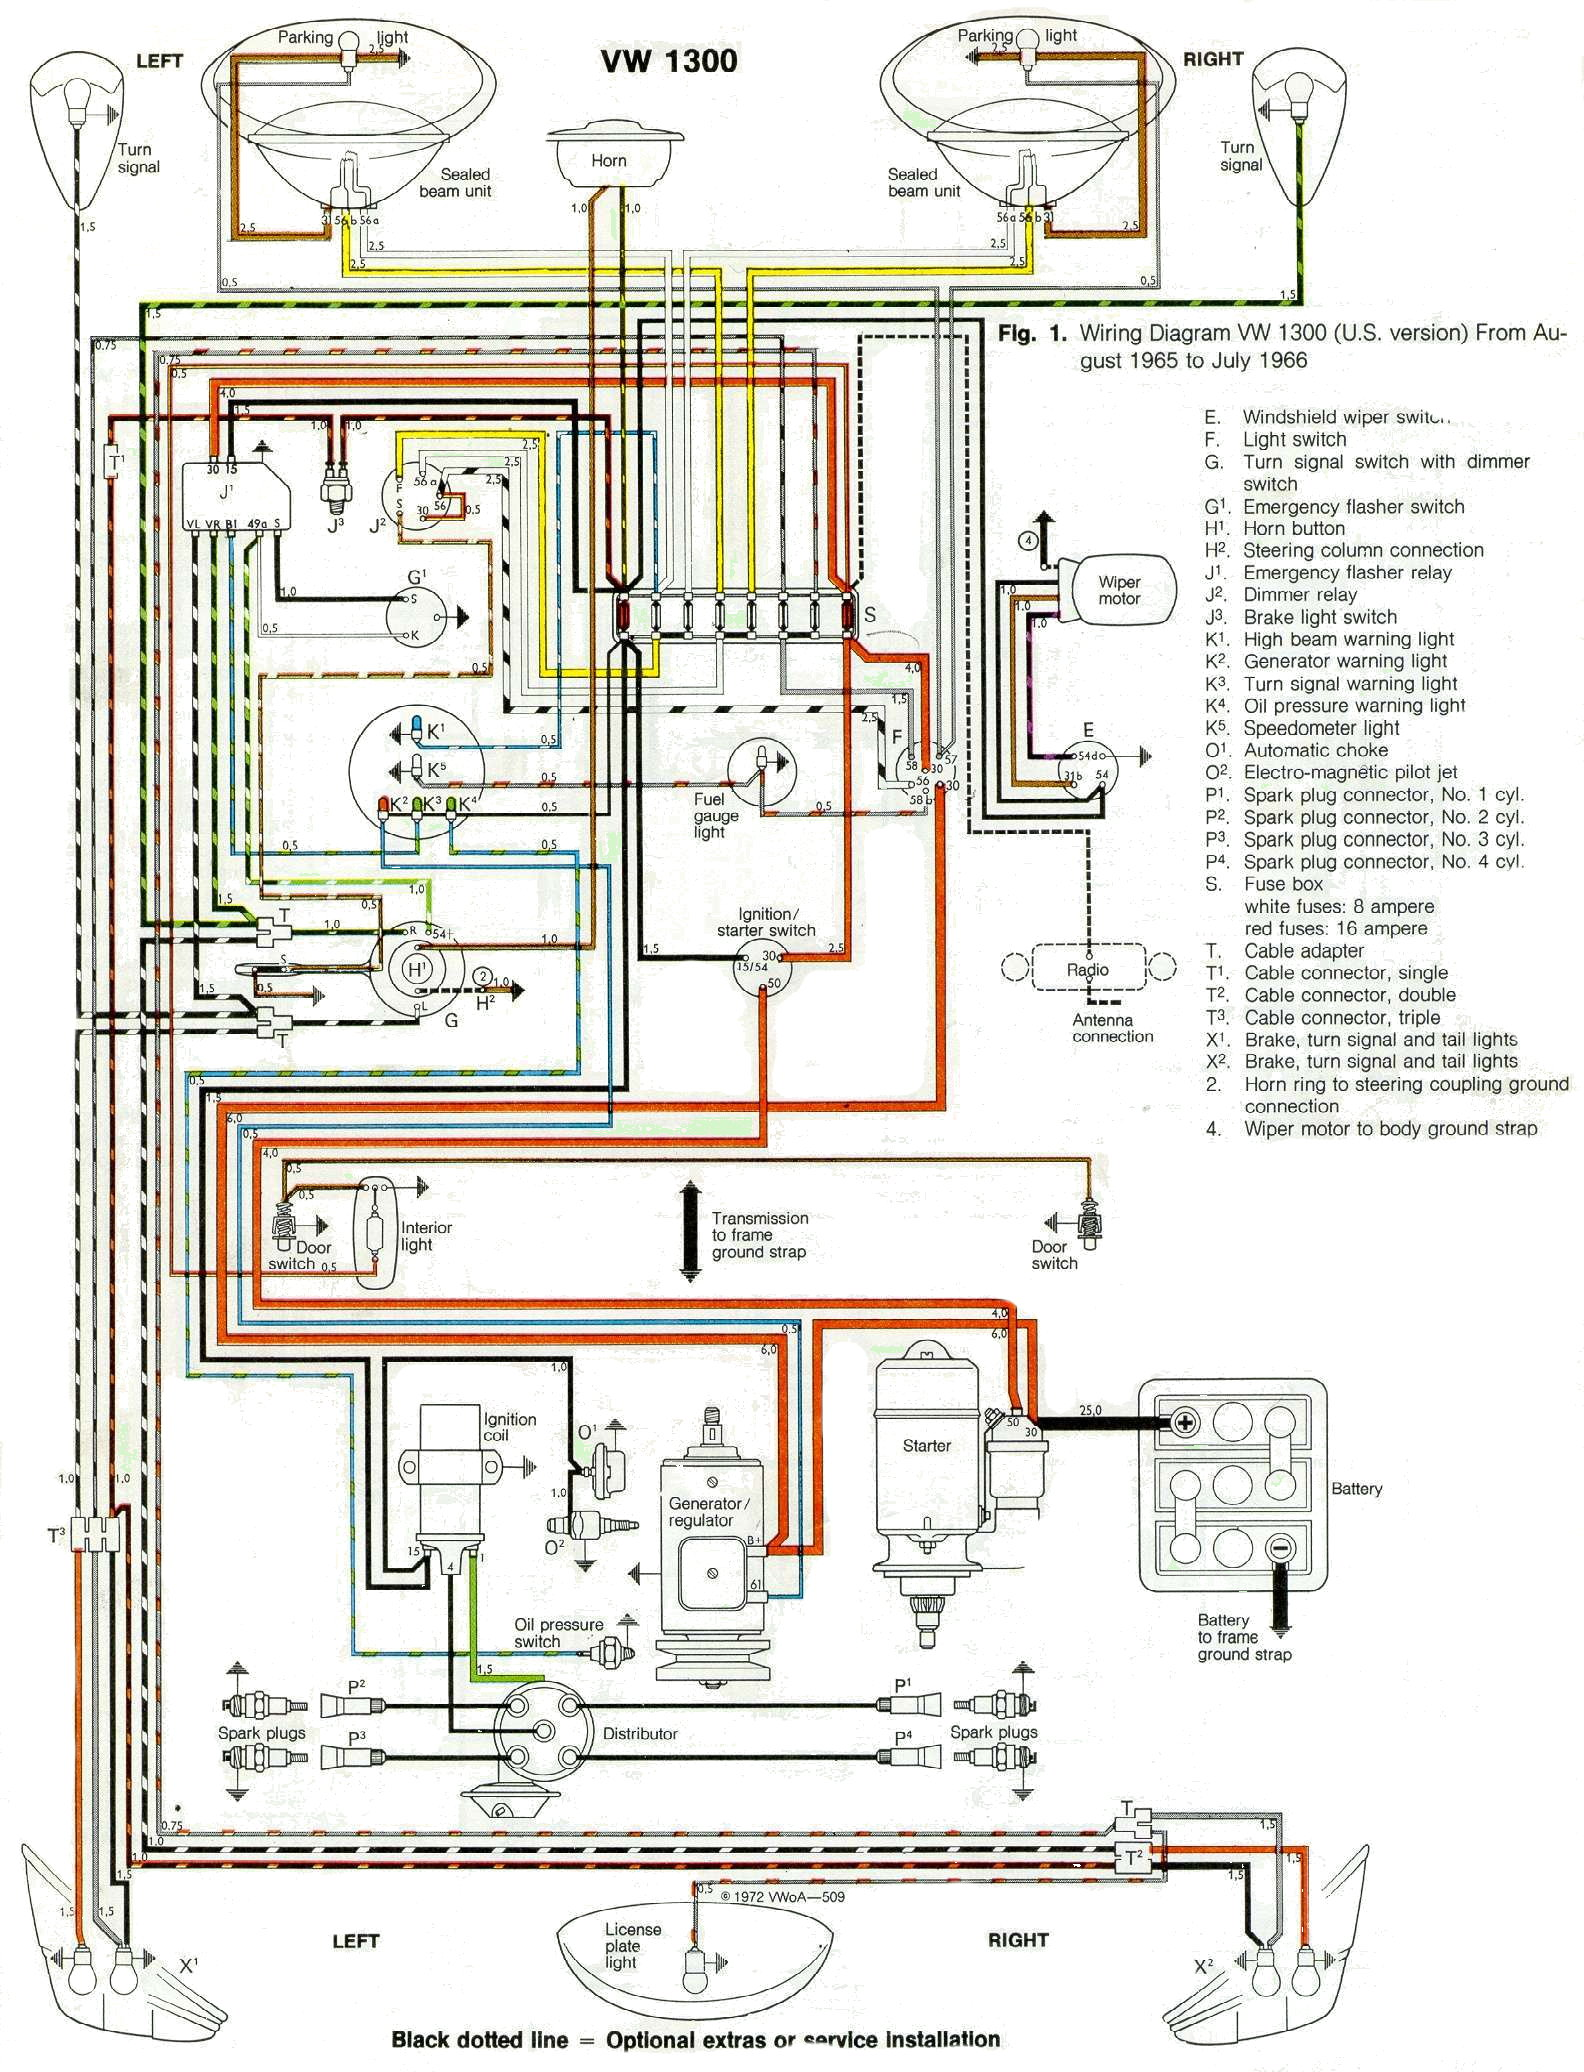 Vw Beetle Cdi Wiring Diagram Trusted Schematic Diagrams 71 Bug Enthusiast U2022 Rh Rasalibre Co 1974 Super